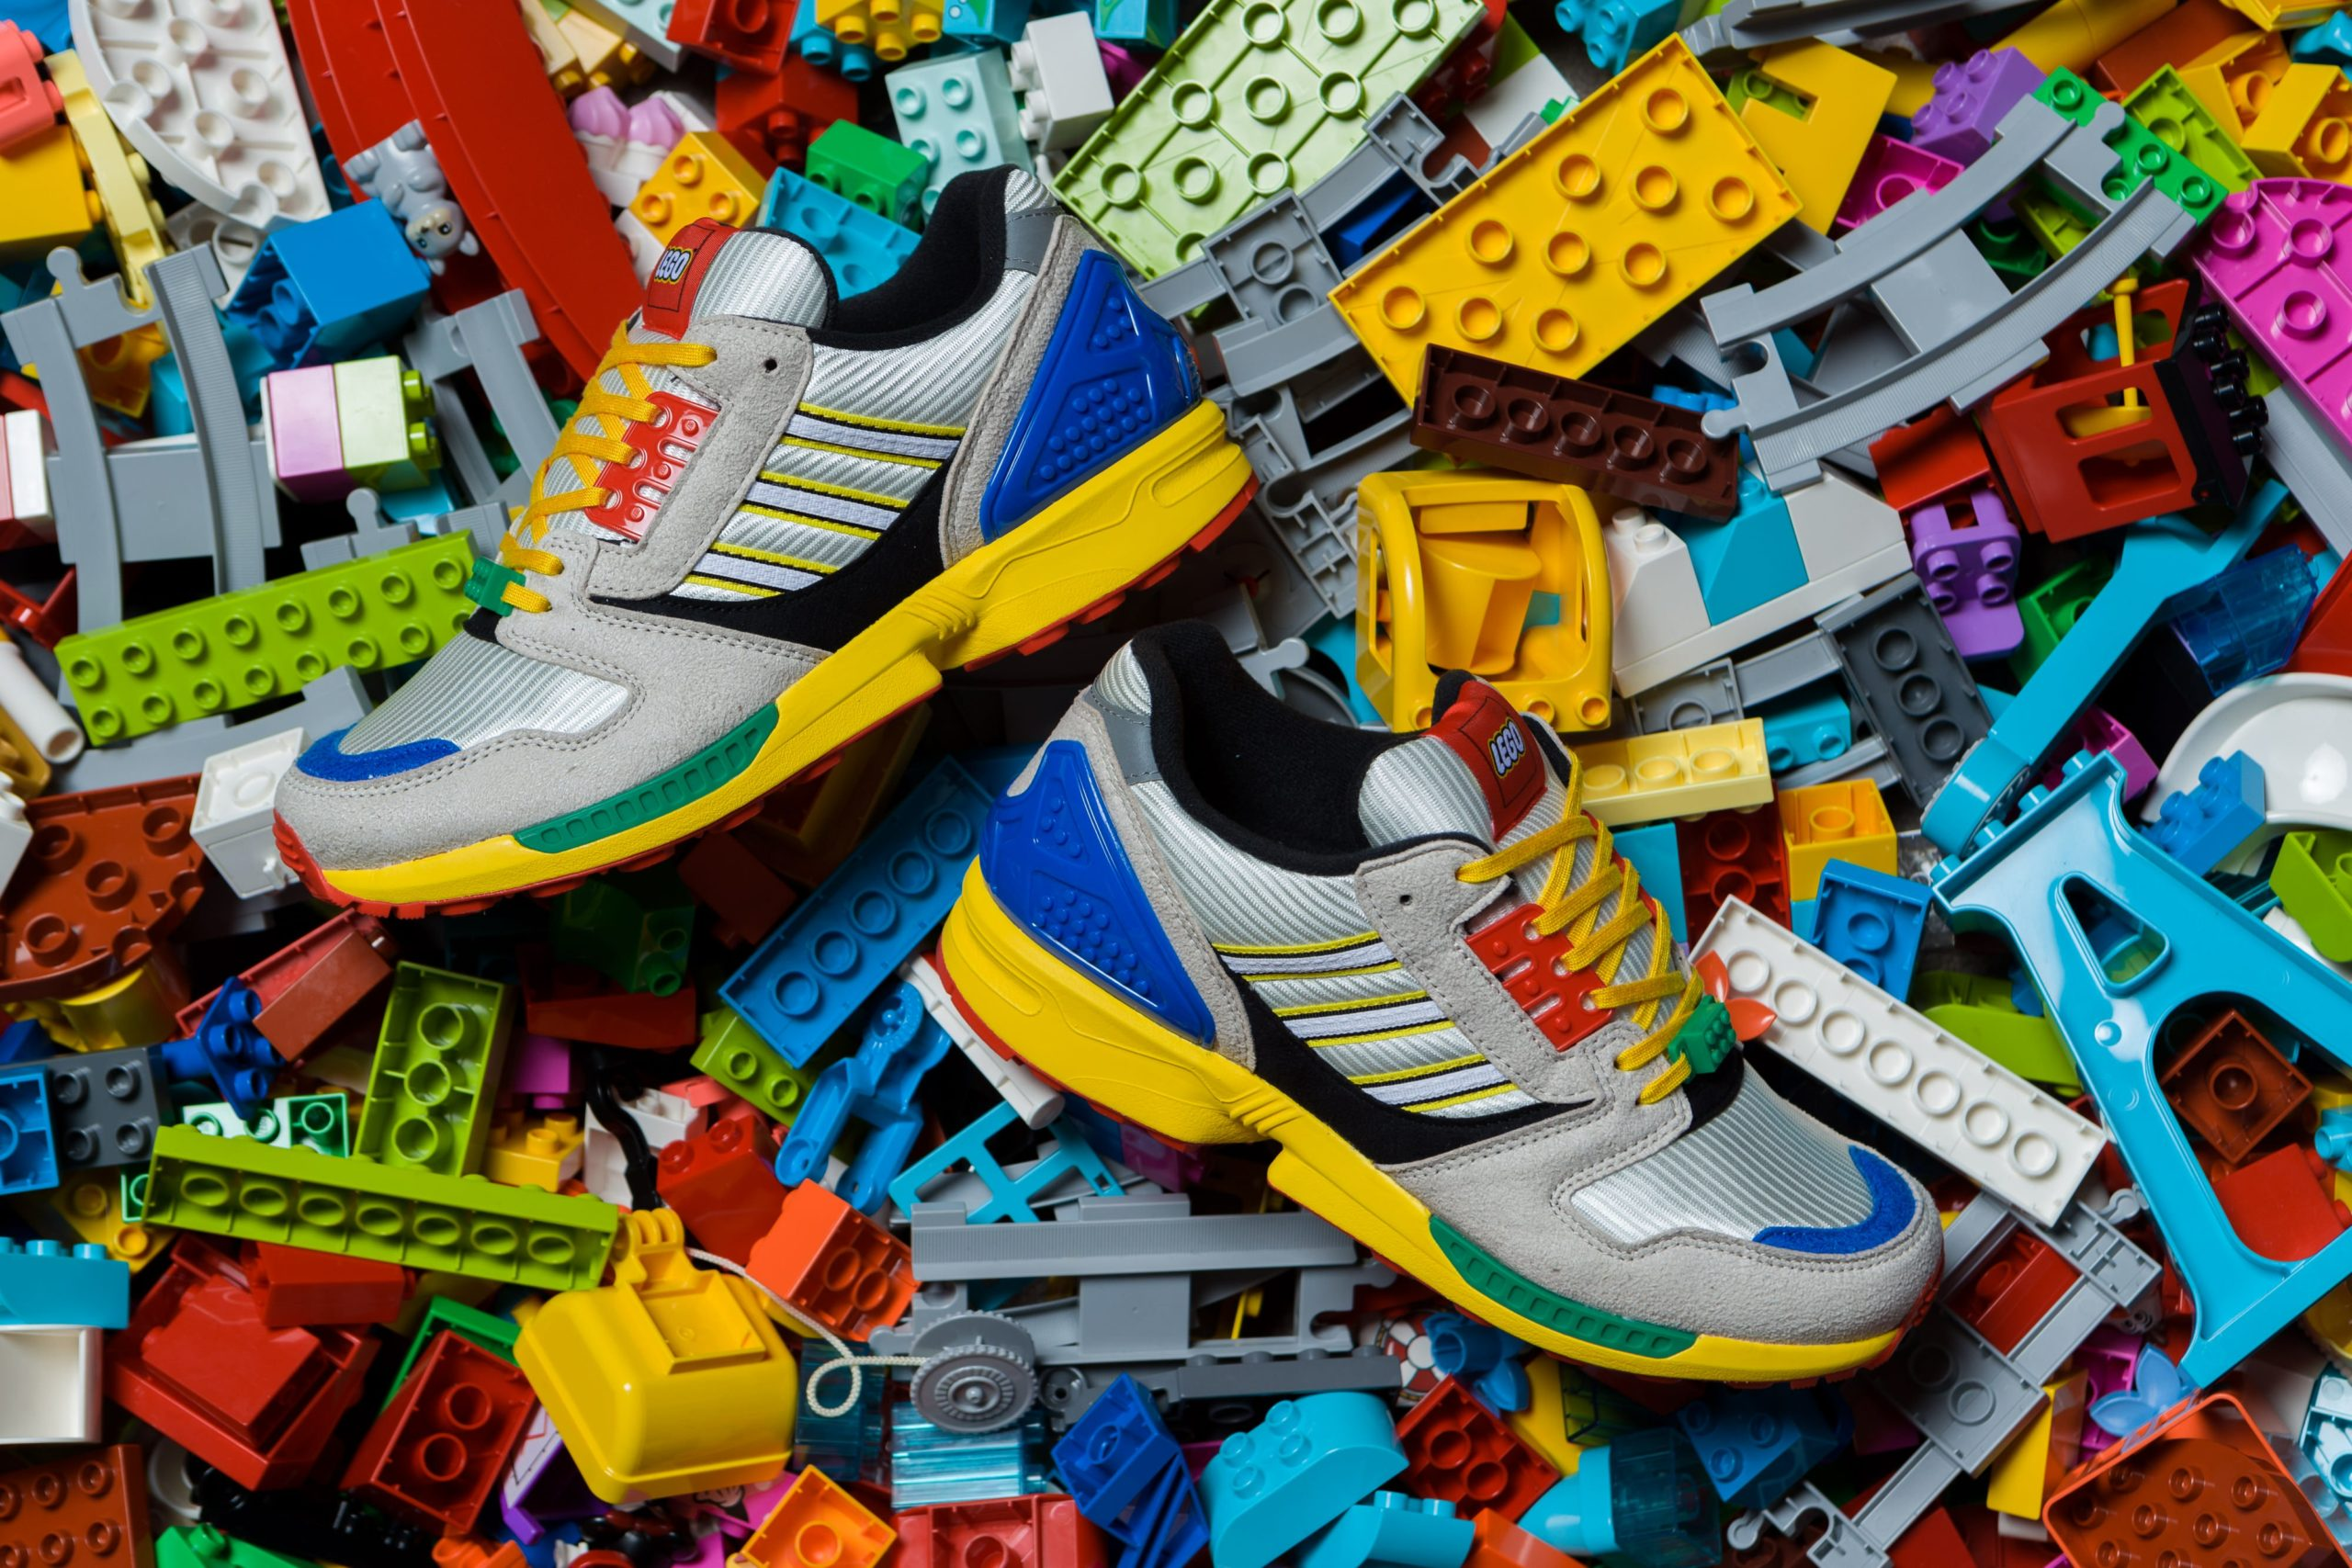 new sneakers launched in September 2020